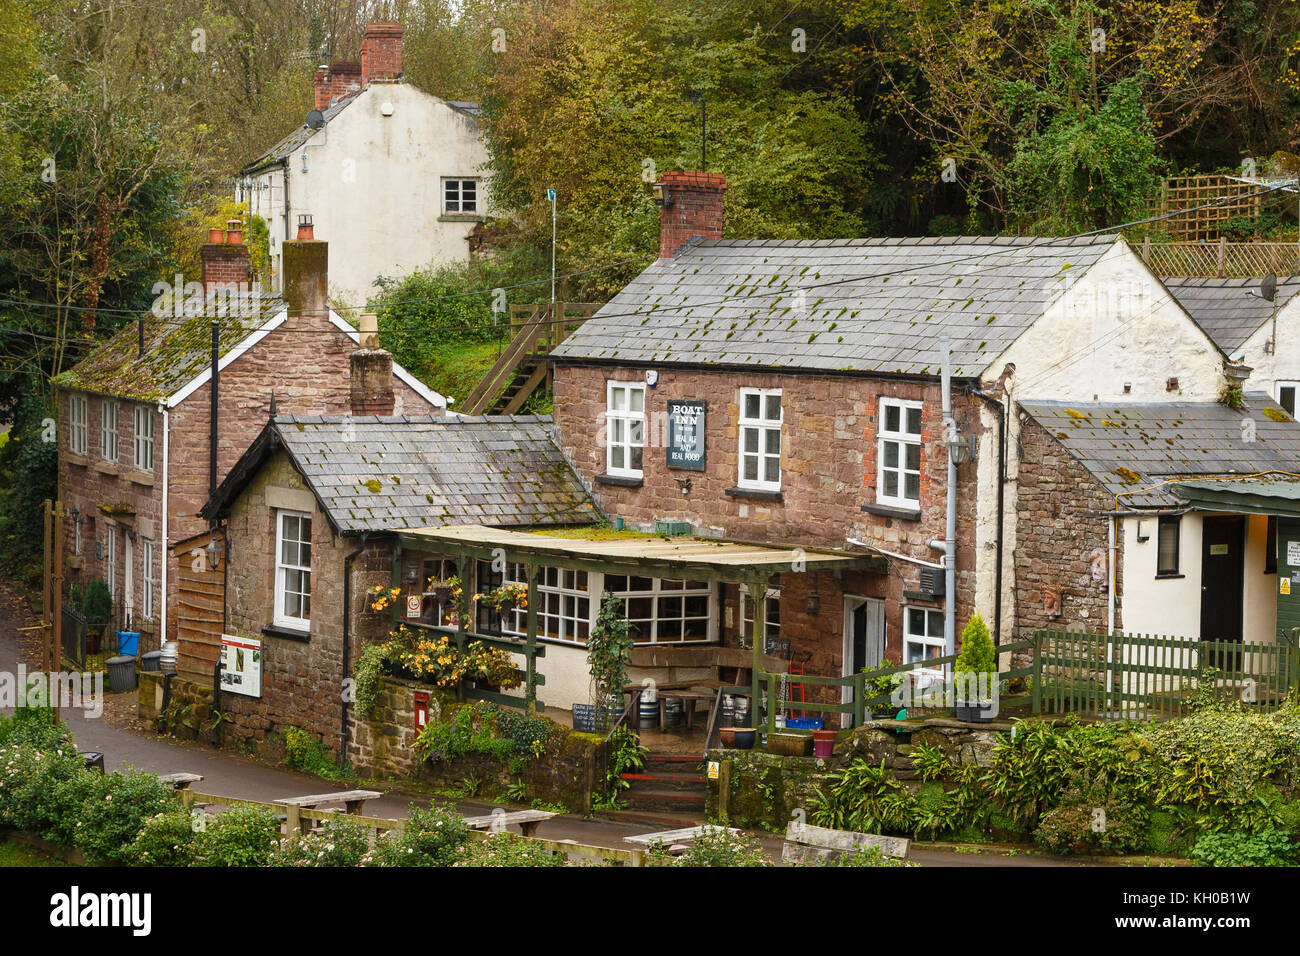 The Boat Inn, on the River Wye, Monmouthshire, Wales, UK - Stock Image